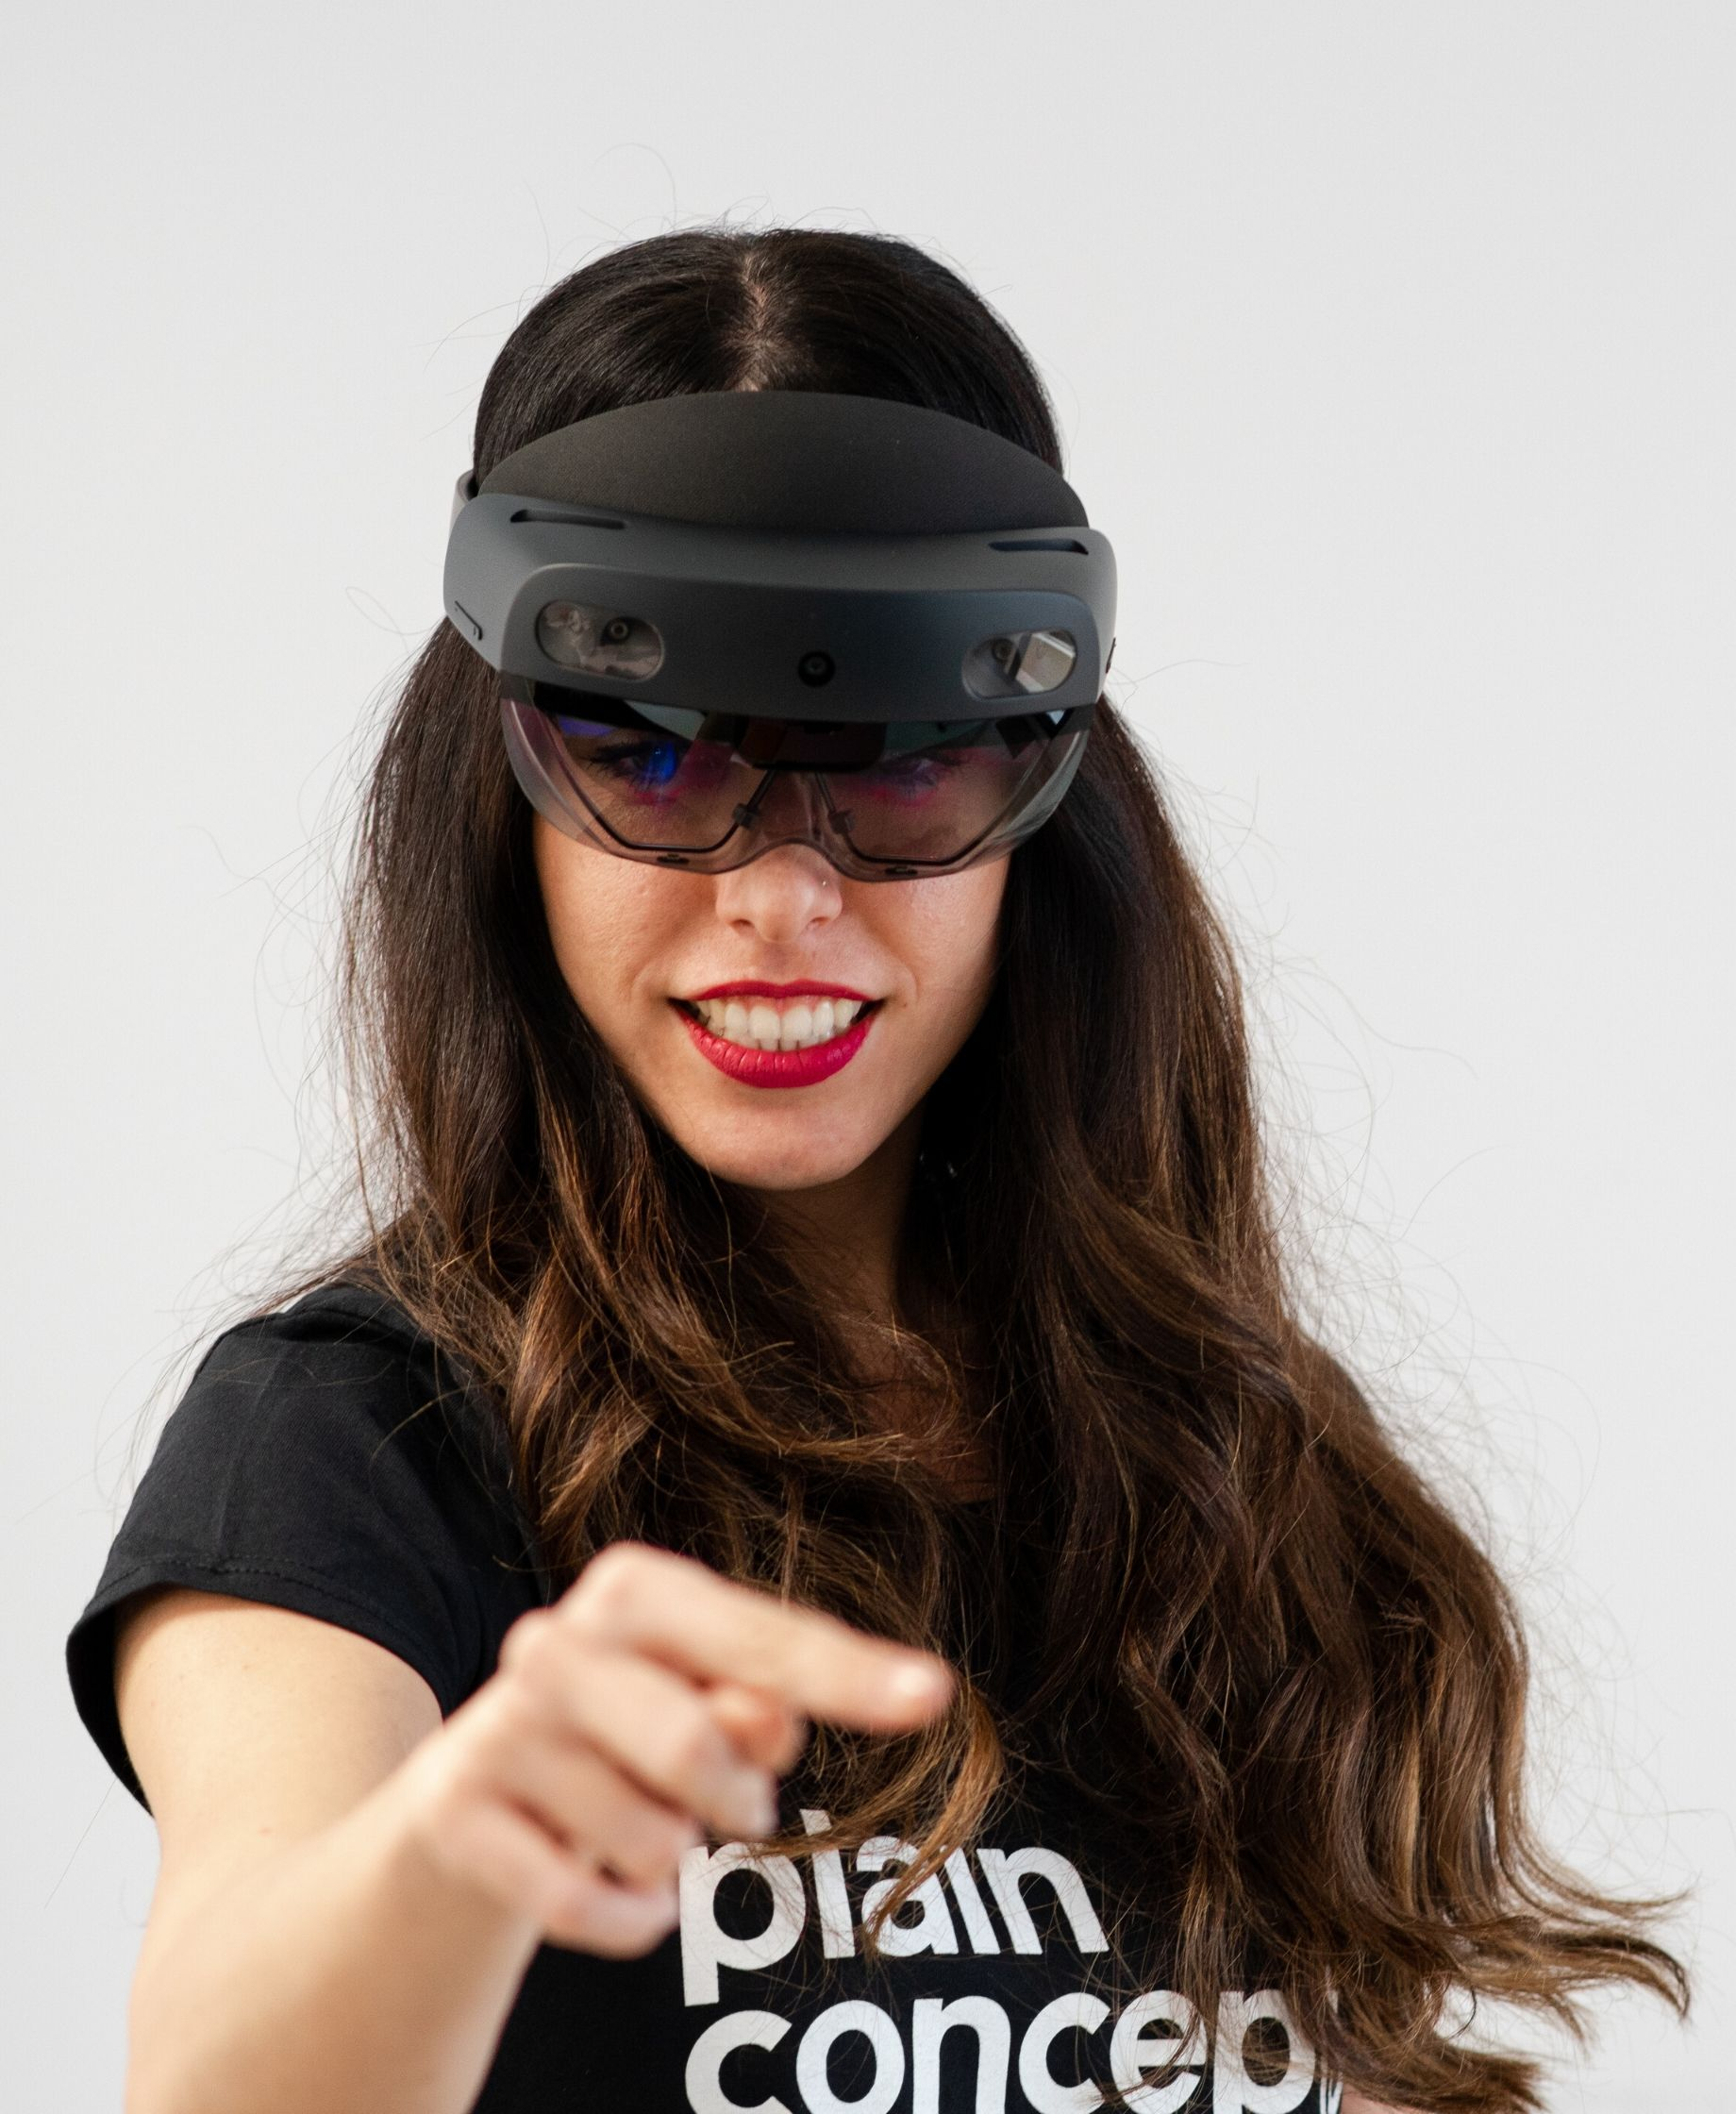 Girl with hololens 2